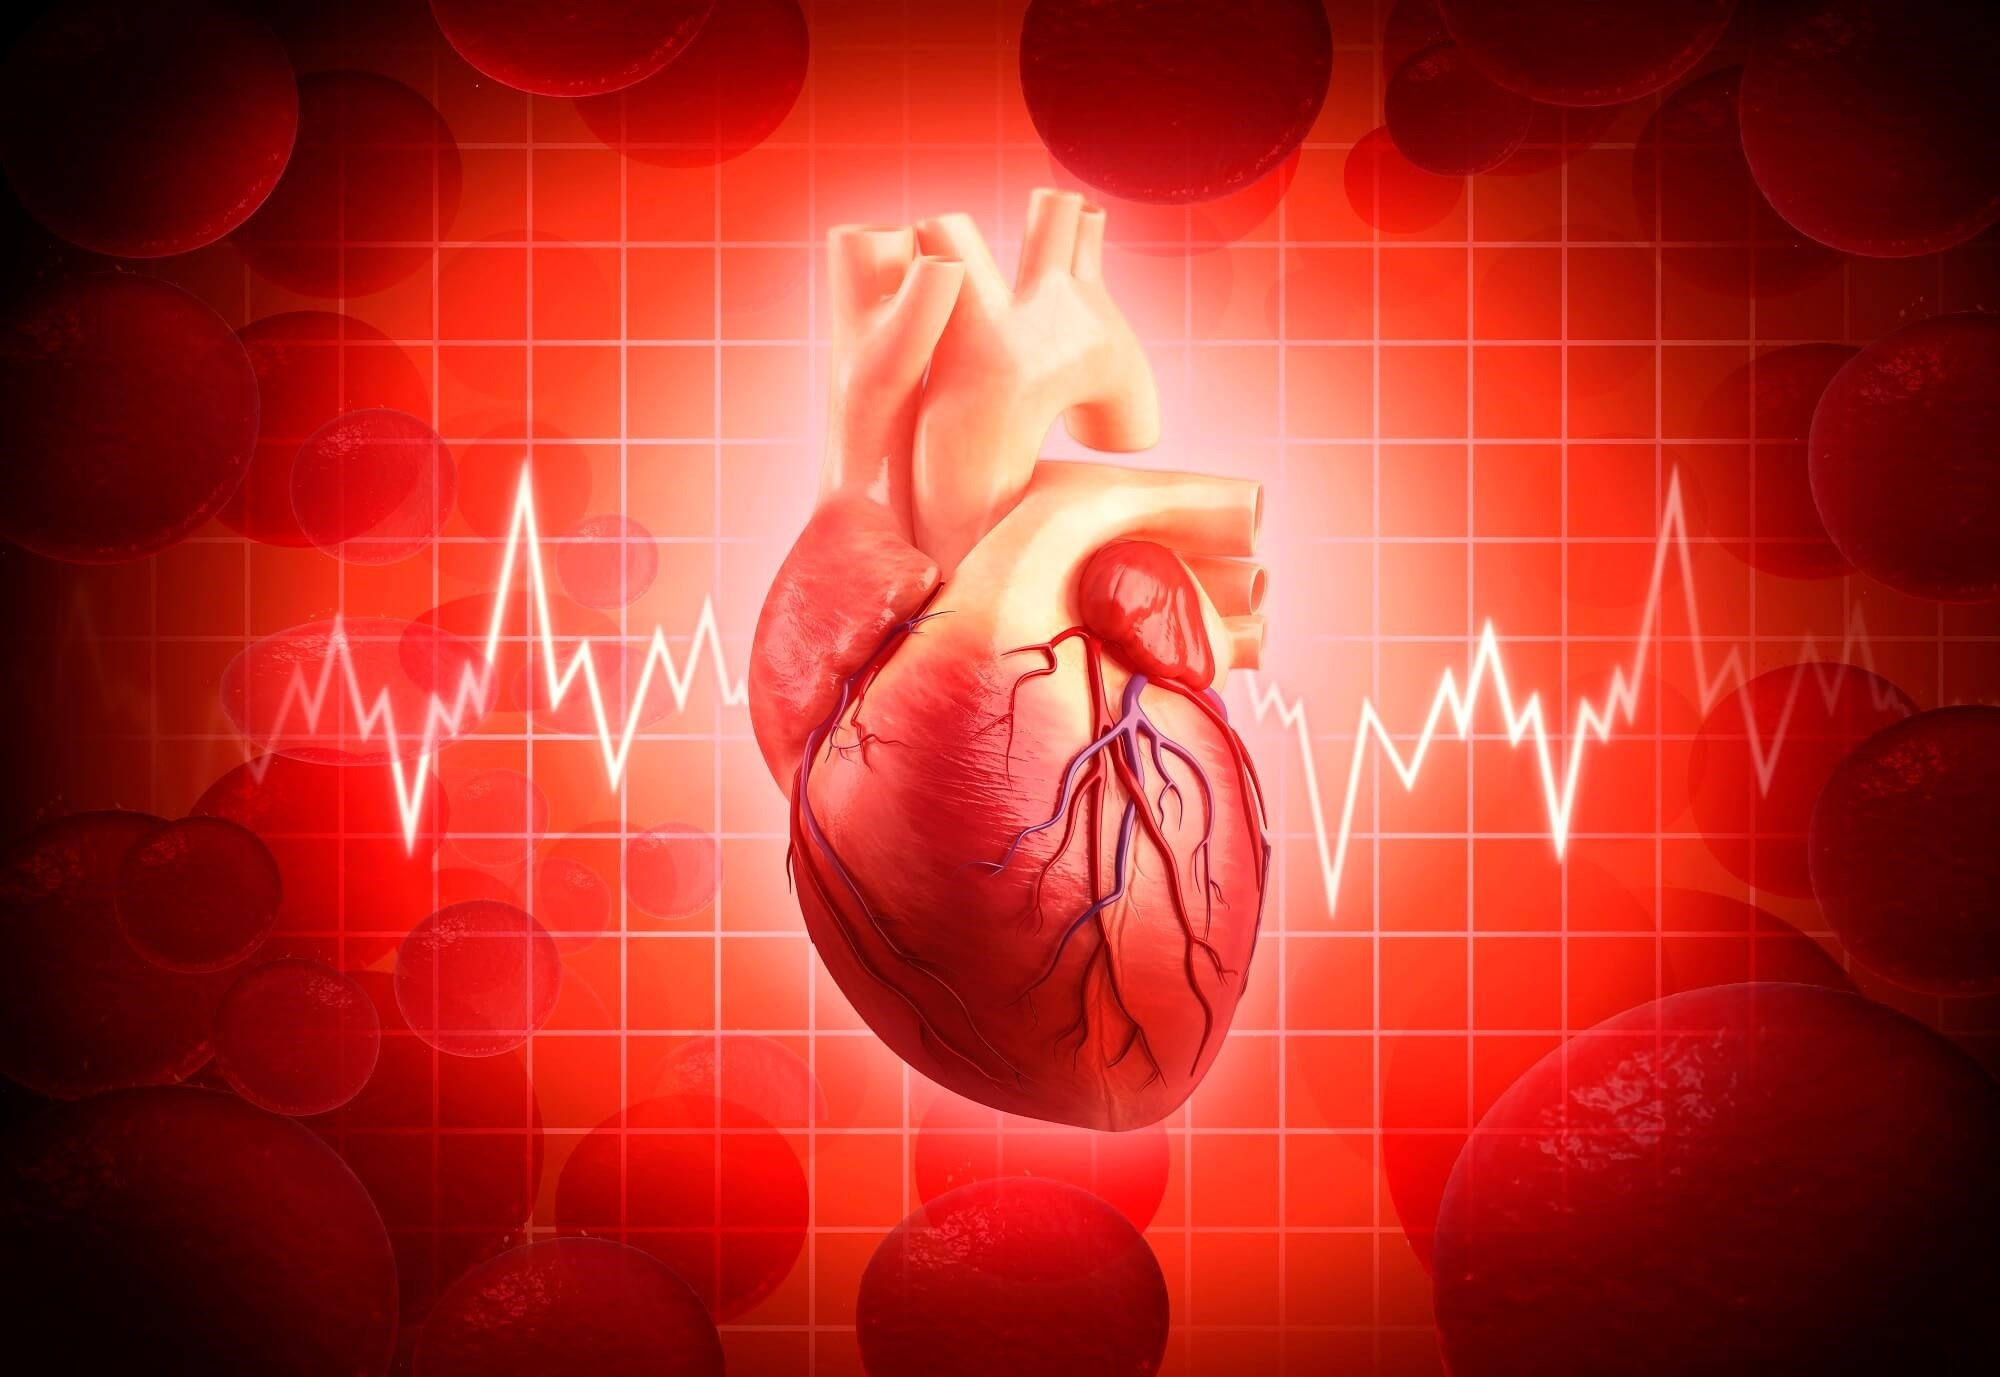 Empagliflozin May Reduce Cardiovascular Mortality in T2D With LVH